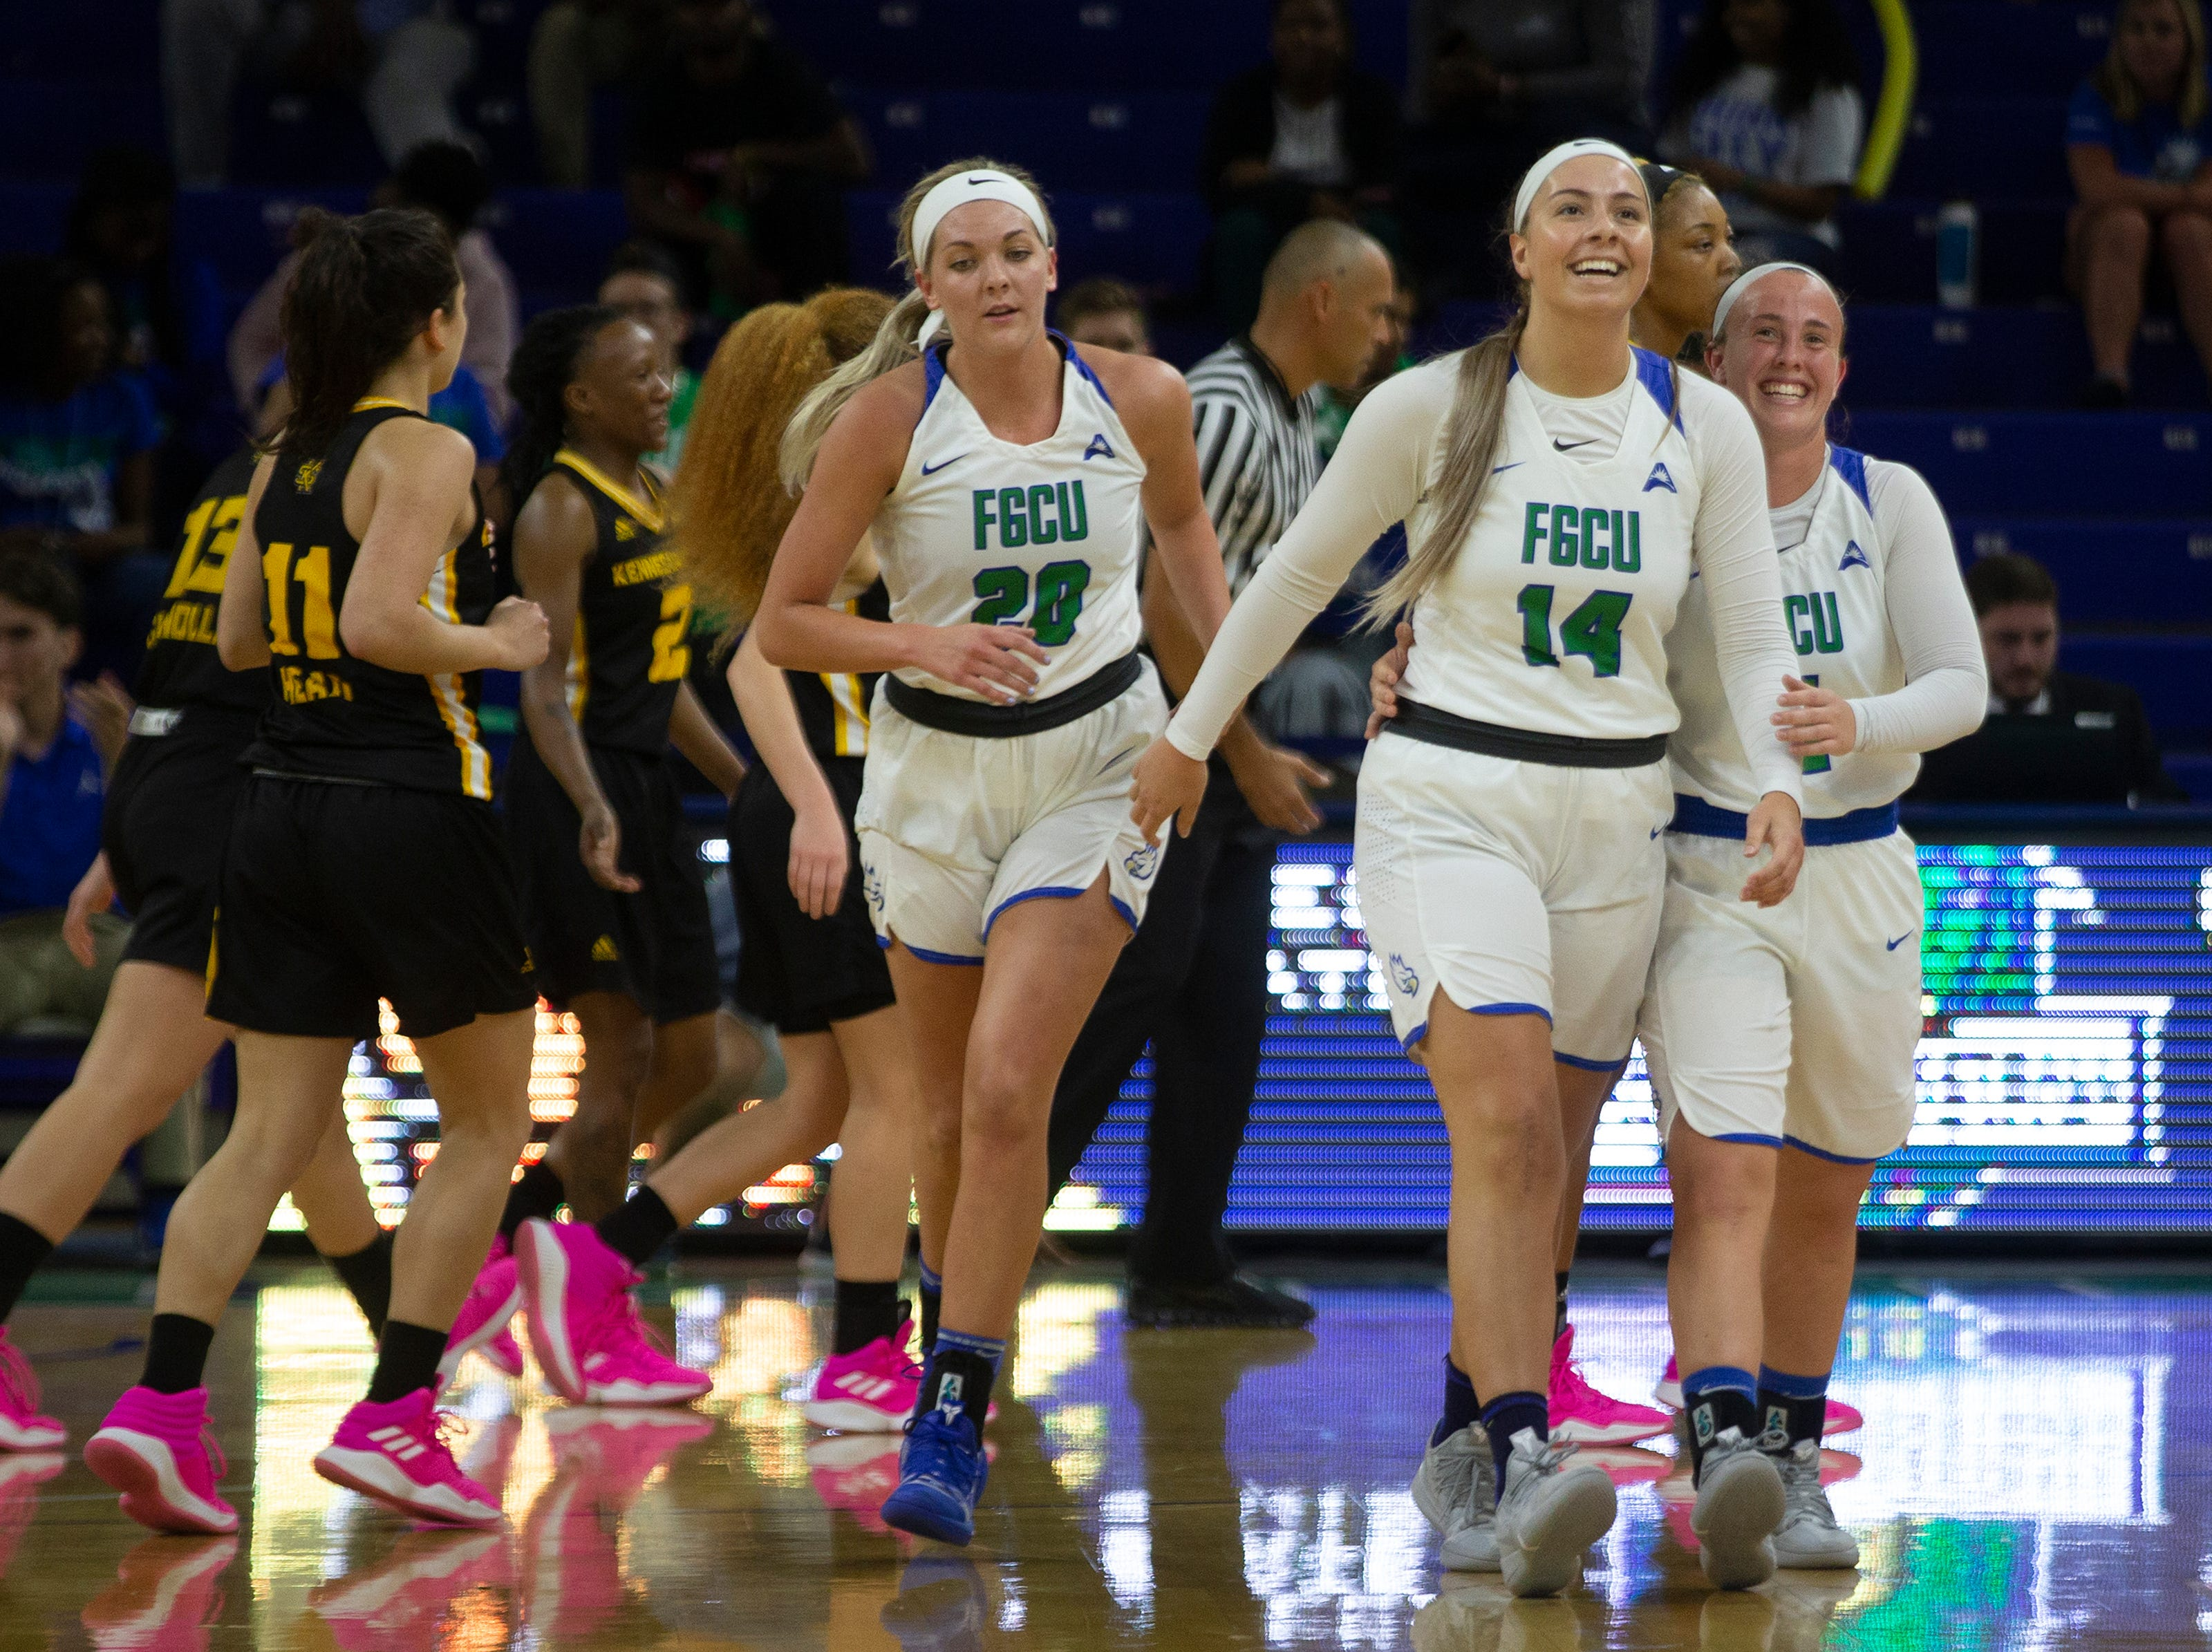 Florida Gulf Coast University's Tanner Bryant, Brittany Johnson and Chandler Ryan walk off the court after defeating Kennesaw State 48-77 on Wednesday, March 13, 2019, at Florida Gulf Coast University's Alico Arena.